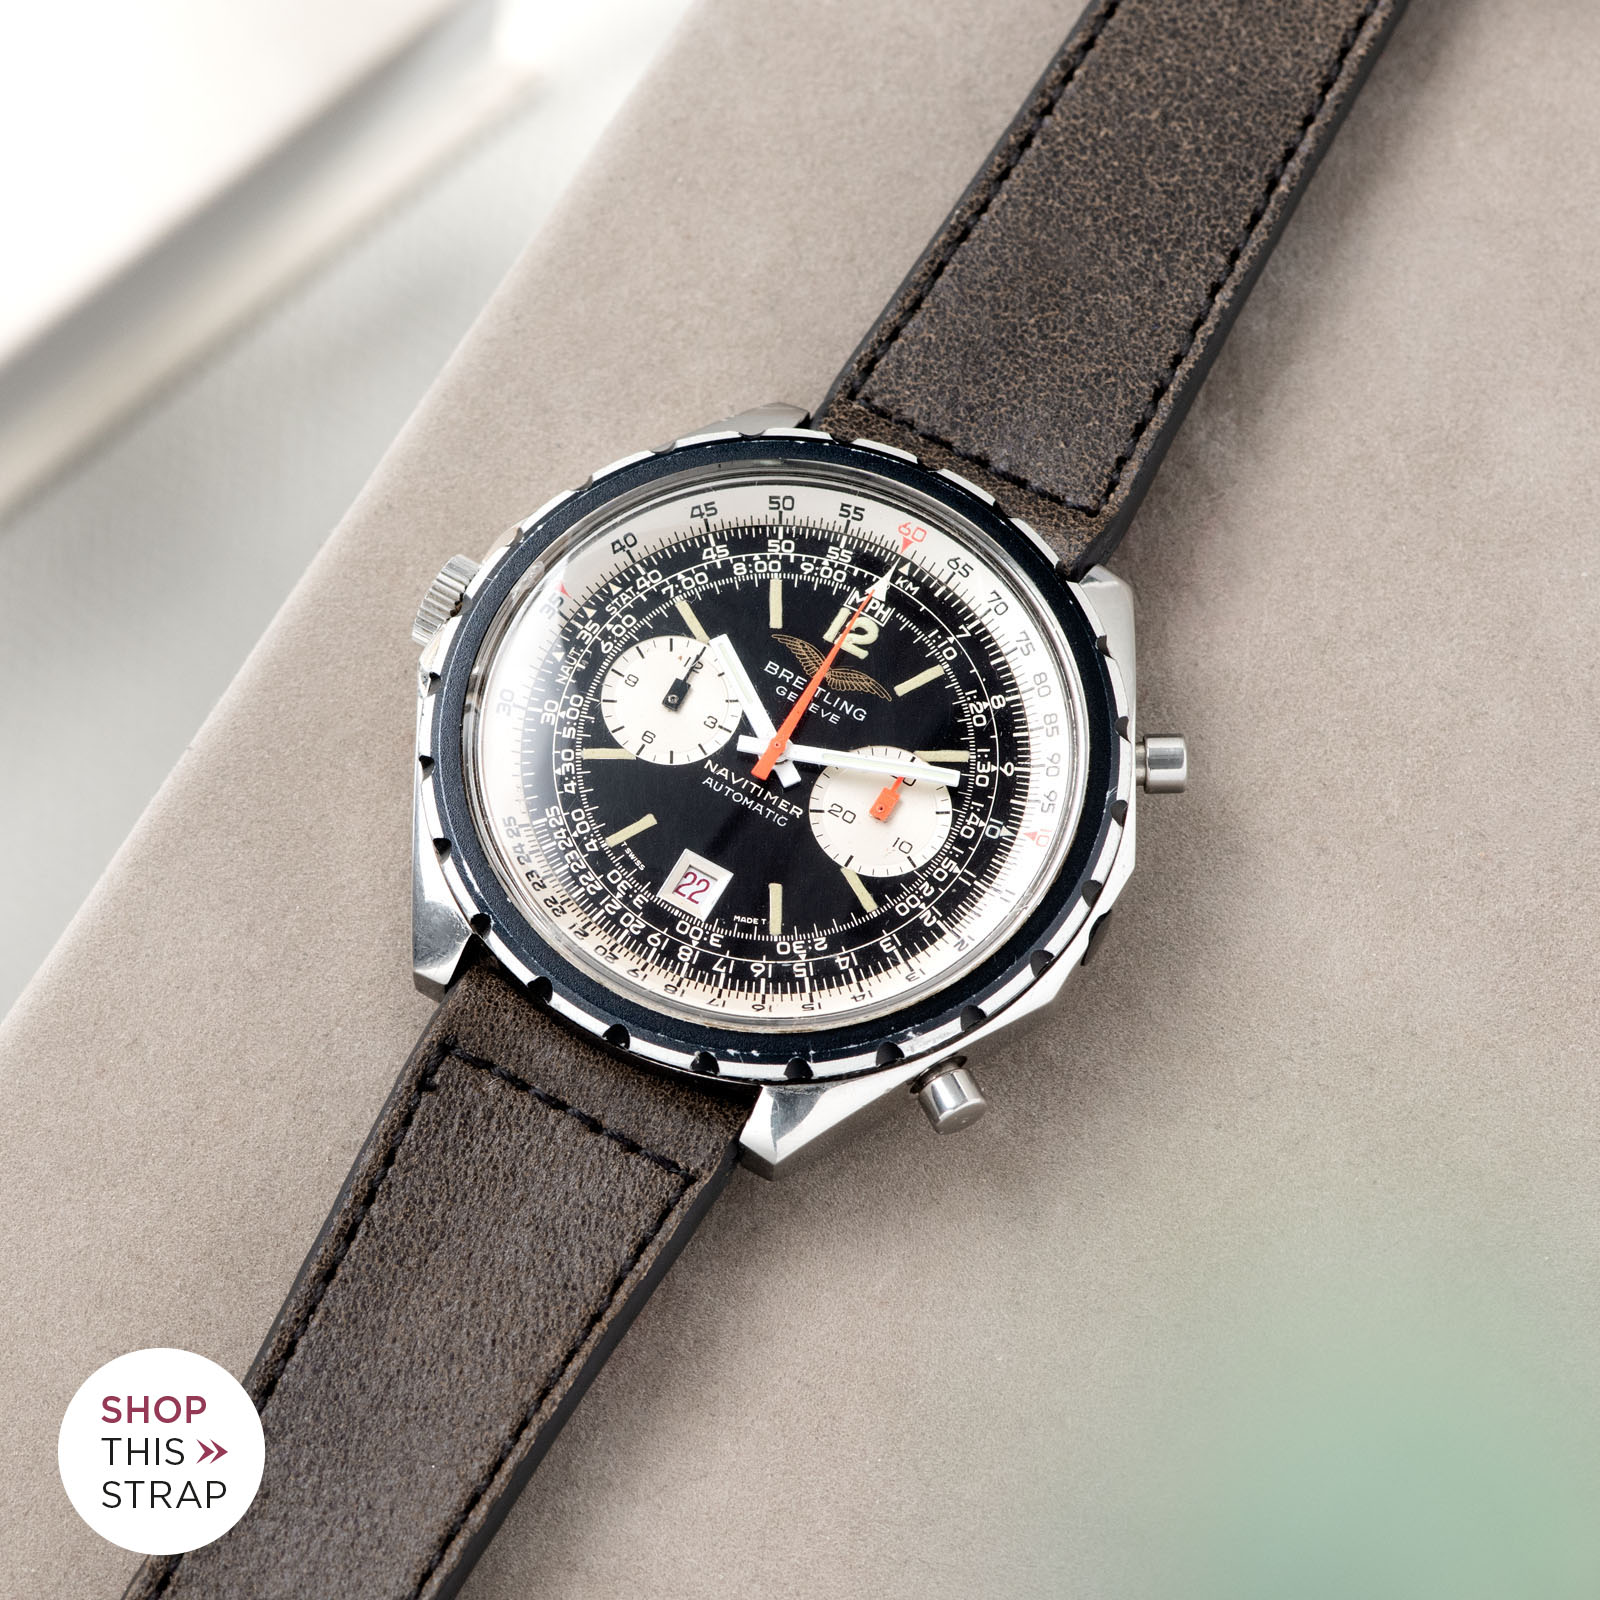 Bulang and Sons_Strapguide_Breitling Navitimer ref issued to iraqi air force ref 1806_Ravello Brown Leather Watch Strap _005